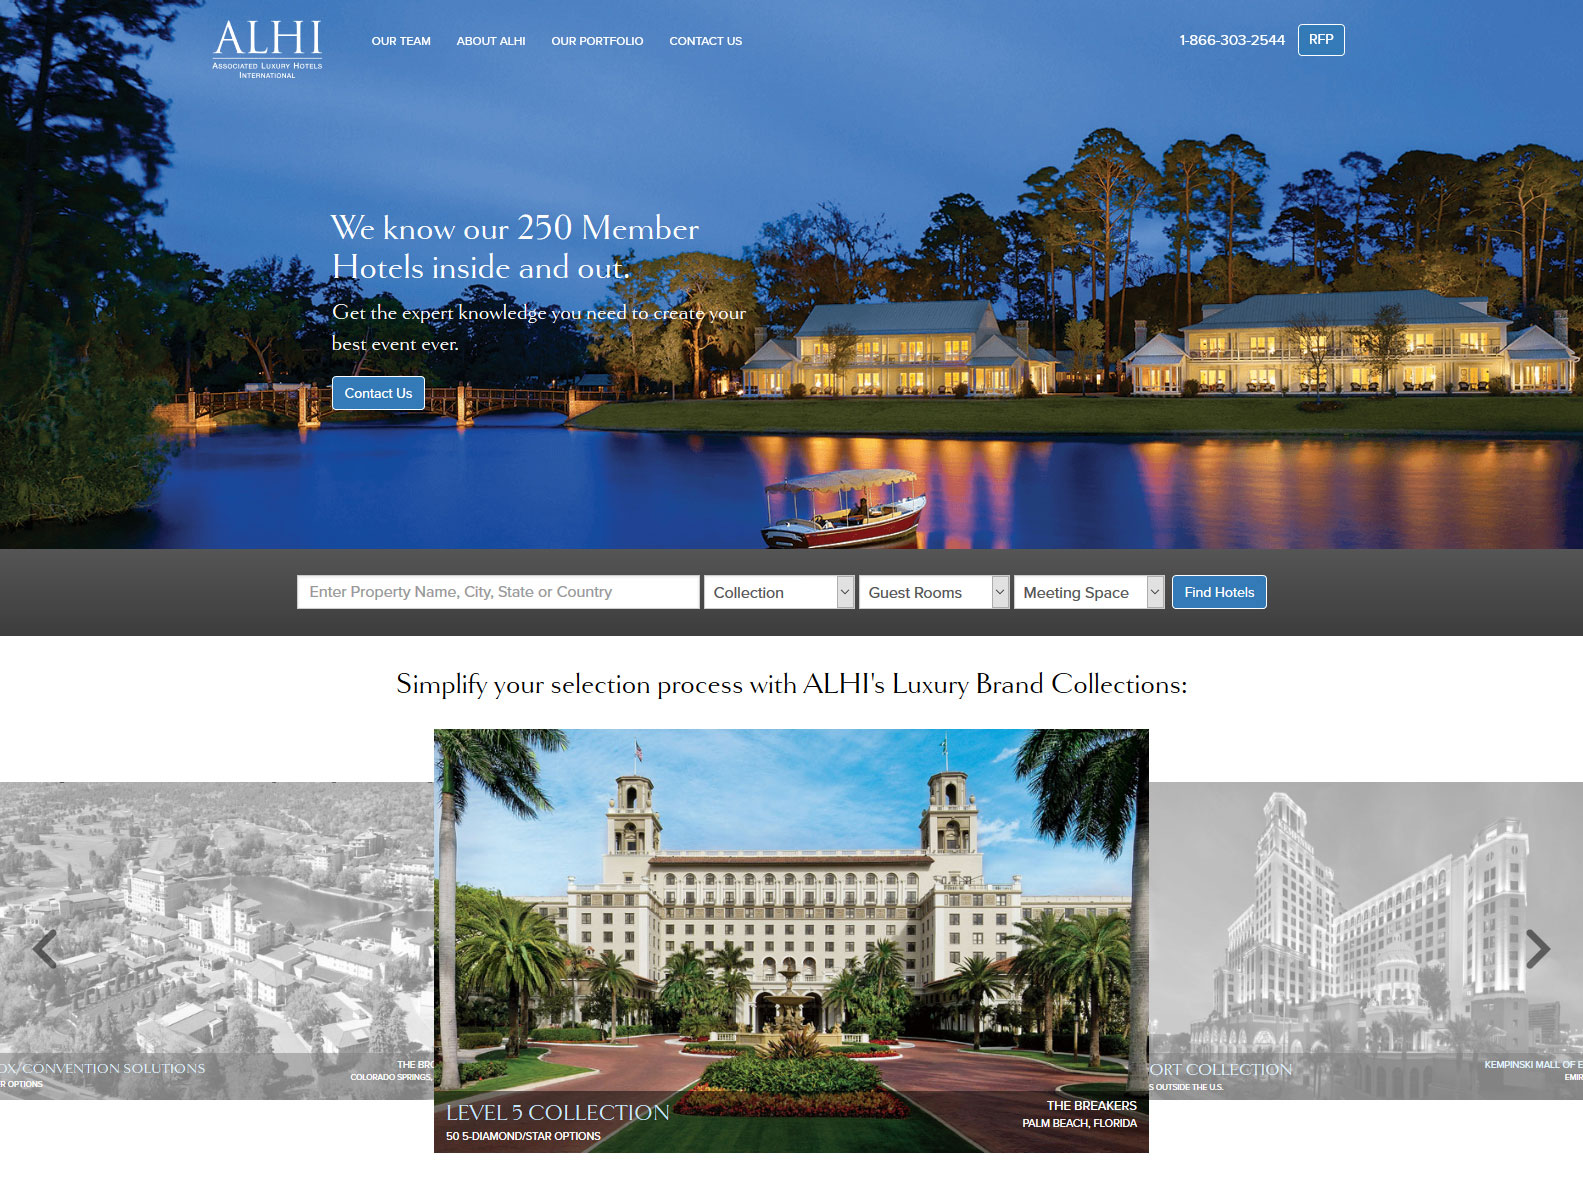 Ociated Luxury Hotels International Alhi Launches All New Website With Many Features